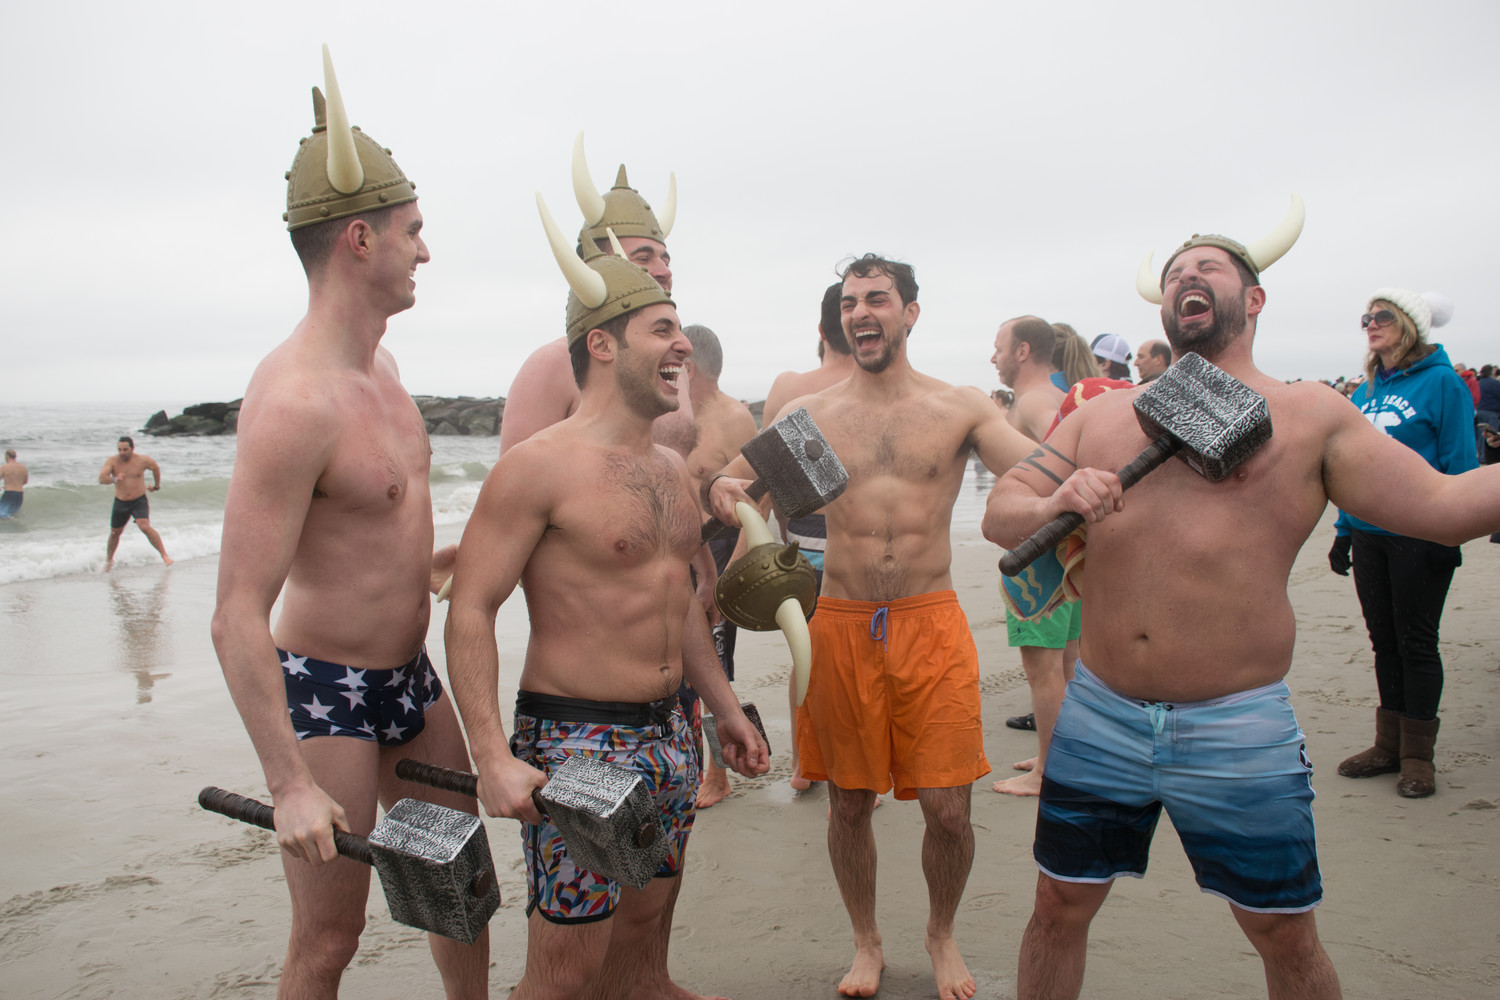 Lynbrook residents Steven DeSena, left, Craig Callabro, Neil Massioli, James O'Hanlan and a friend celebrated after donating to the Make-A-Wish foundation and taking the plunge for the fourth year in a row on Sunday.